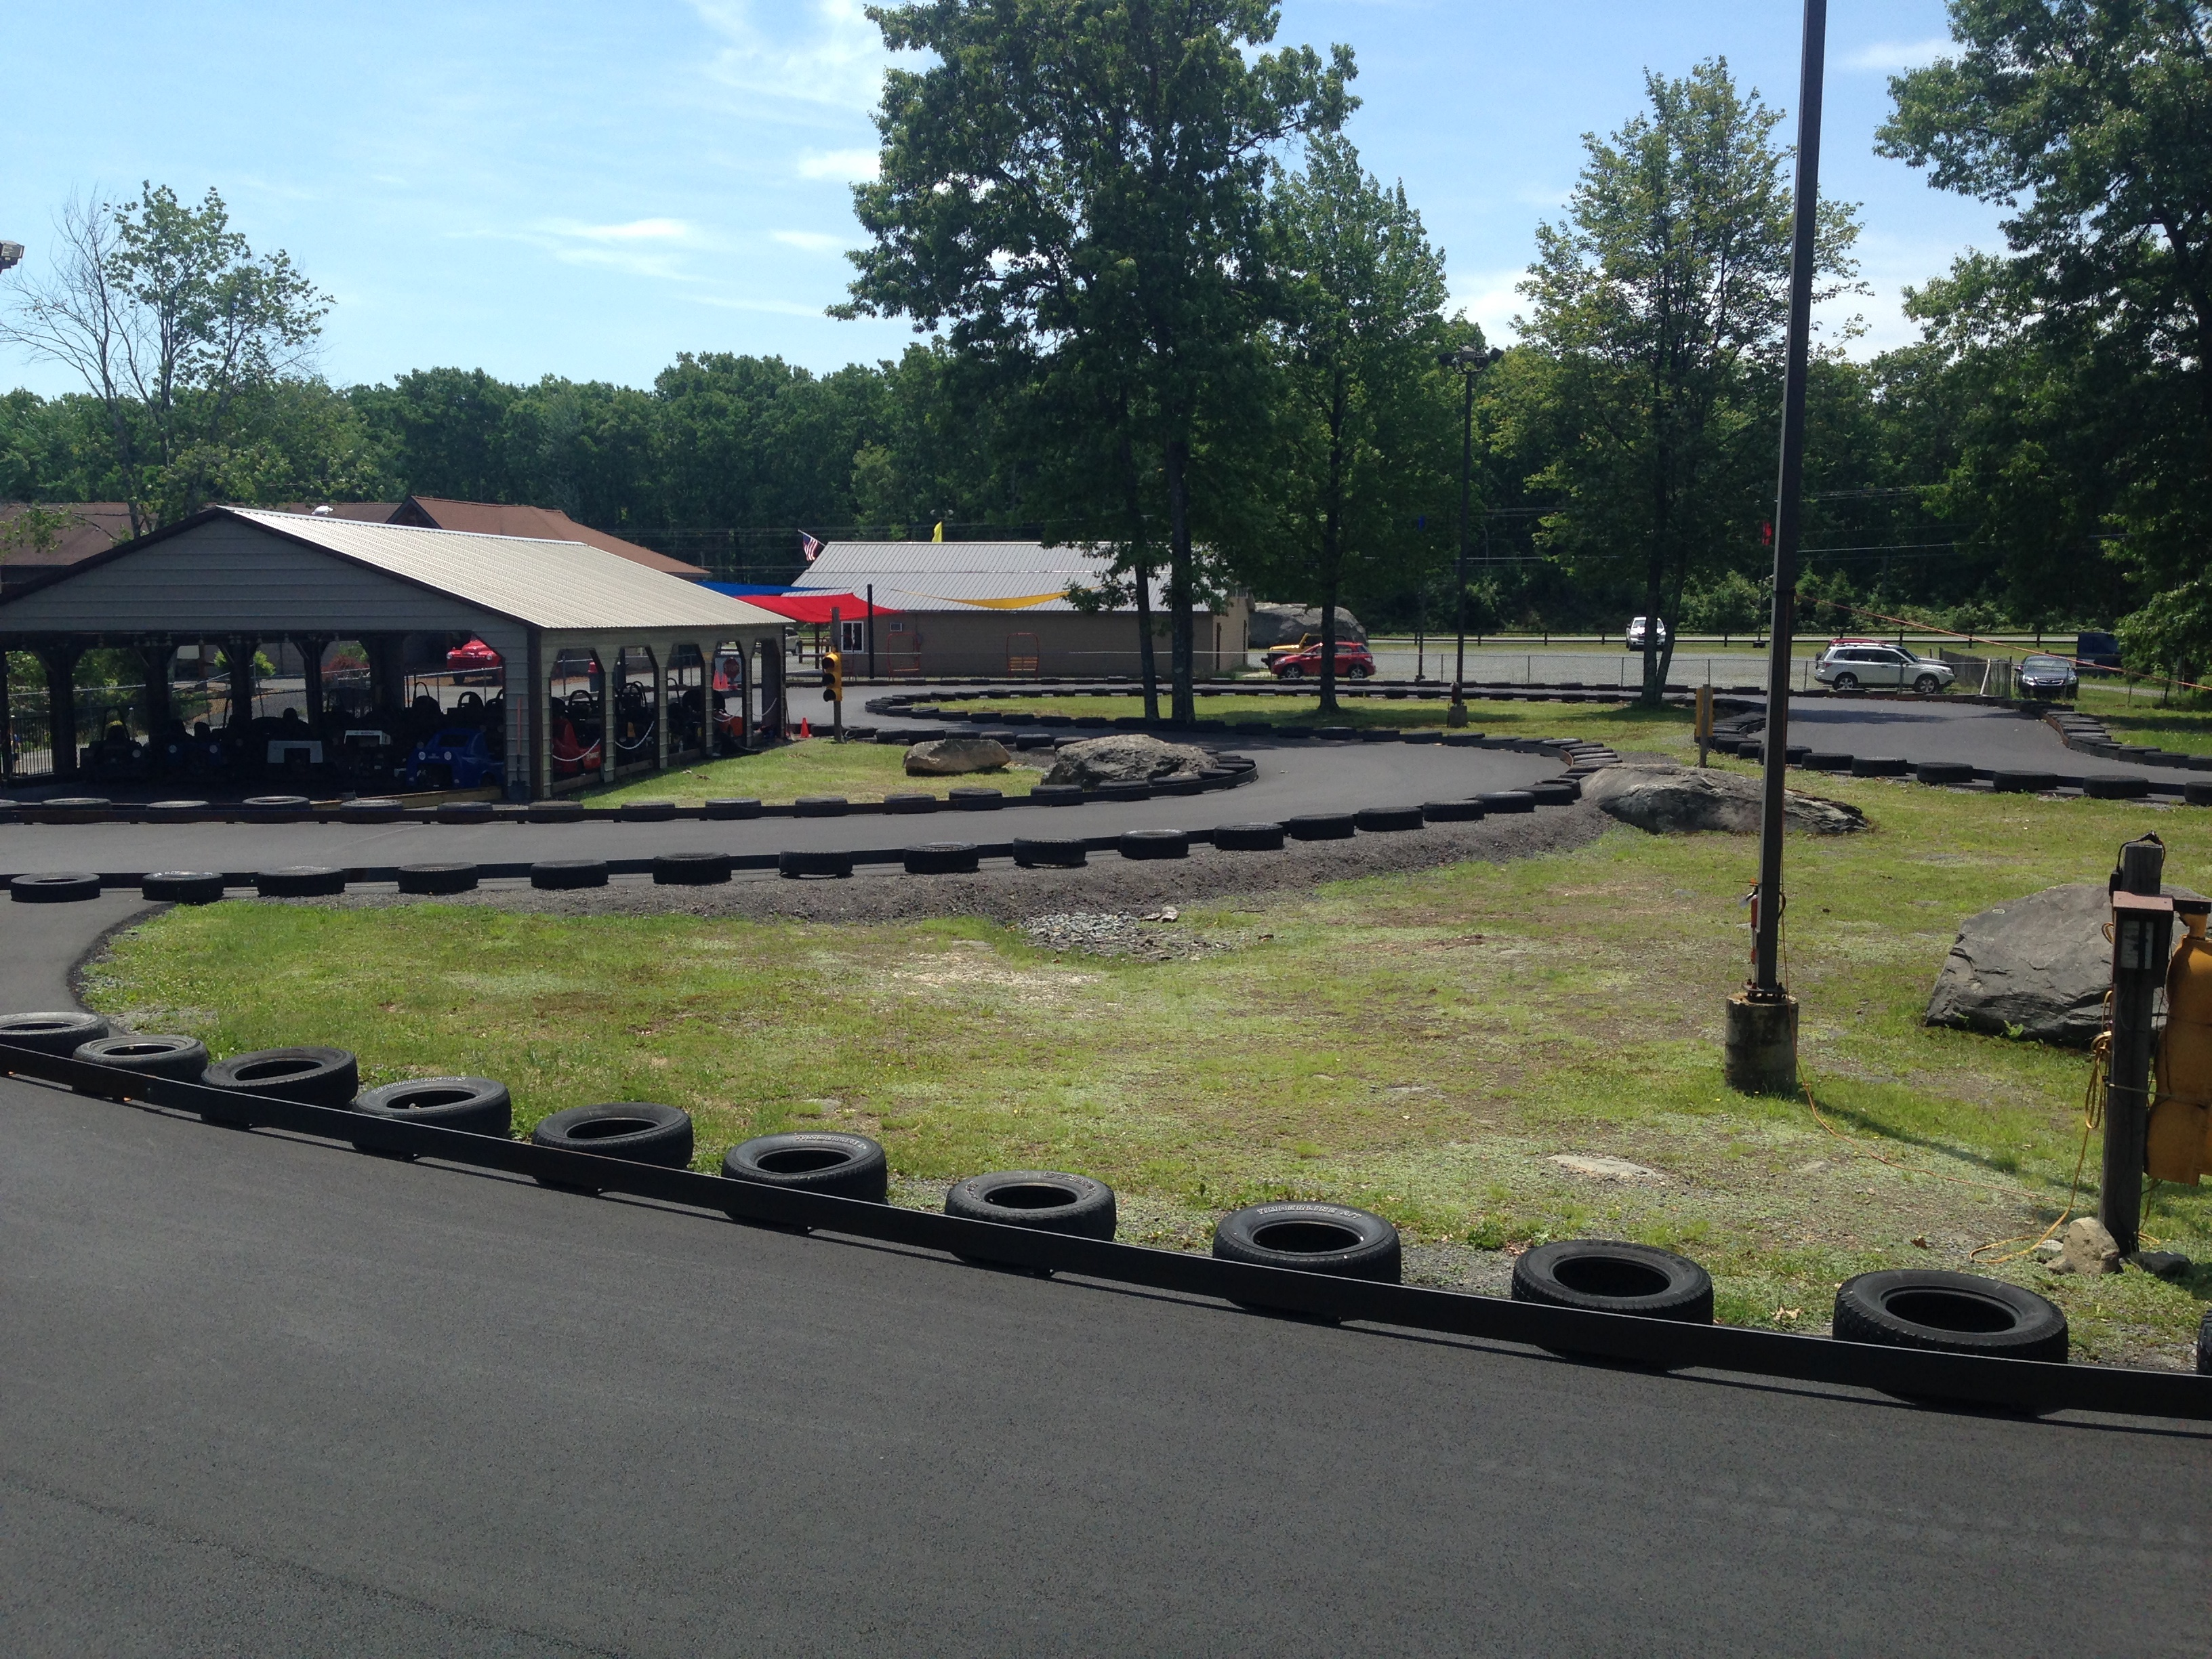 Go Kart track at Costa's